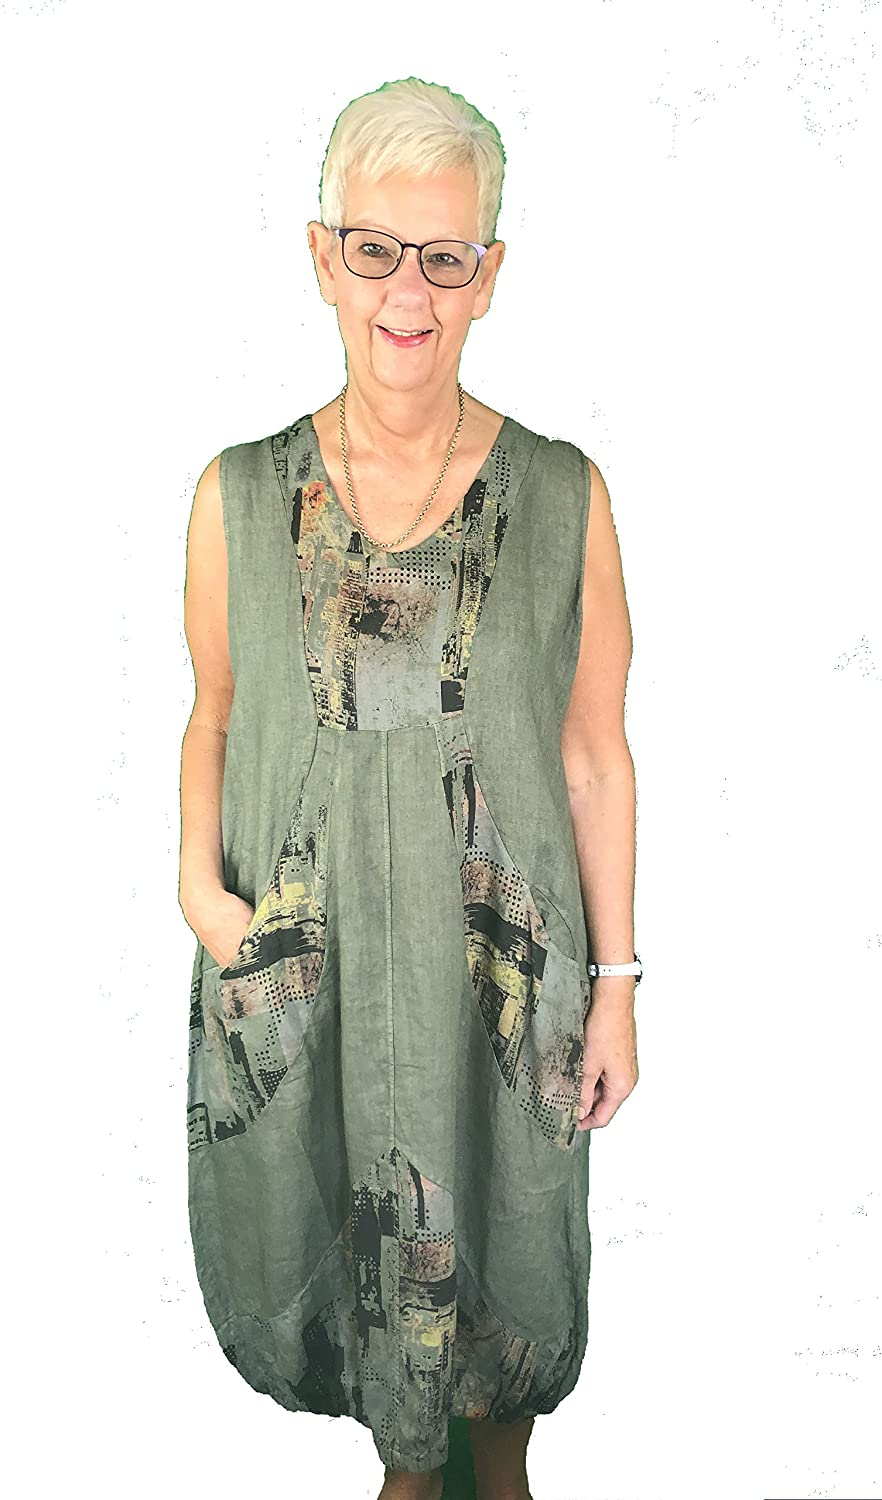 Pamper Yourself Now ltd Green V Neck Balloon Bottom Dress with Multi Coloured Panels with Two Front Pockets 100% Linen. One Size Recommended Fits Size 12-20 Made in Italy (AA66)